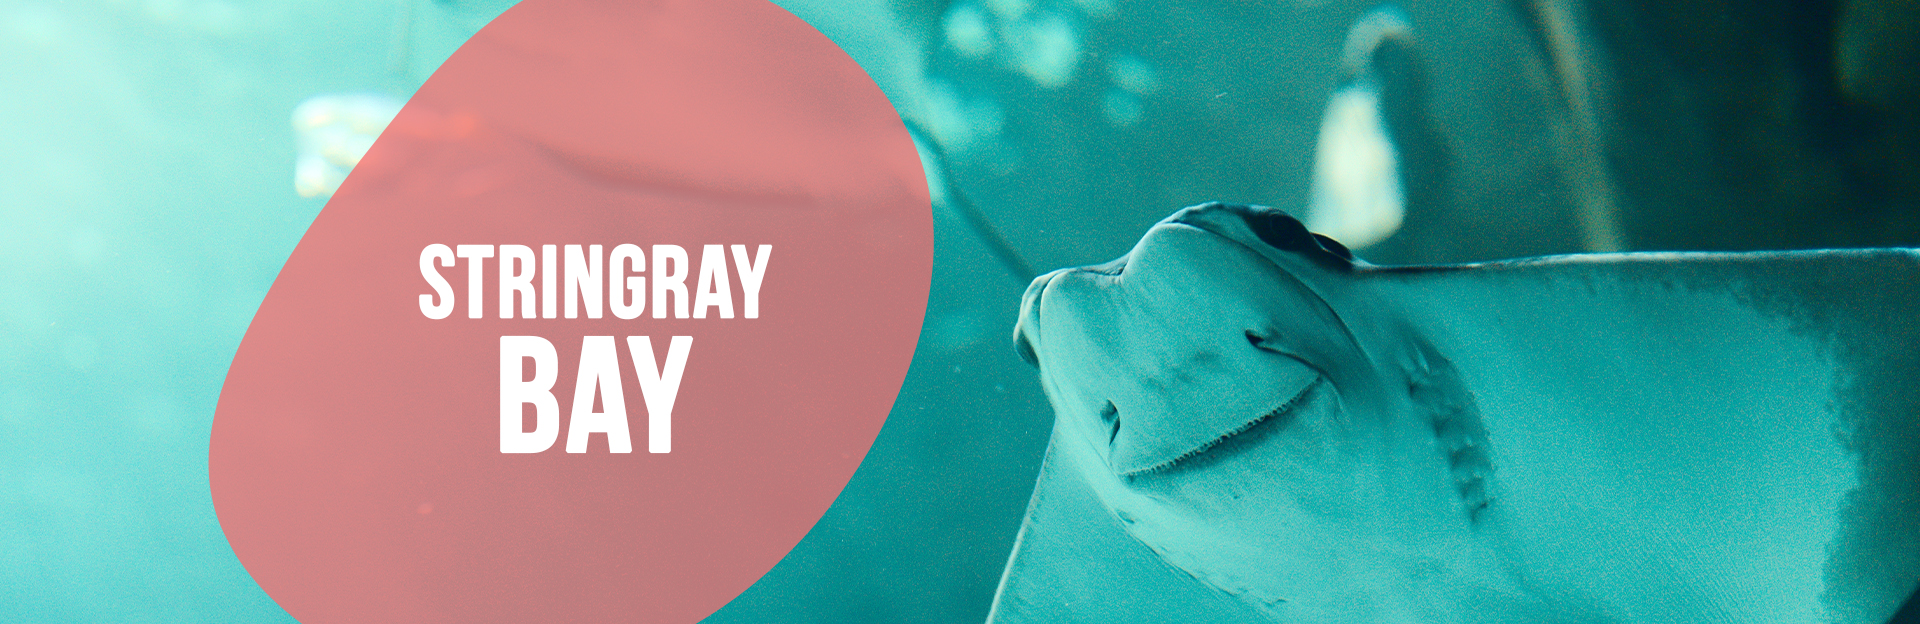 Header image of Stingray swimming for the Stingray Bay page